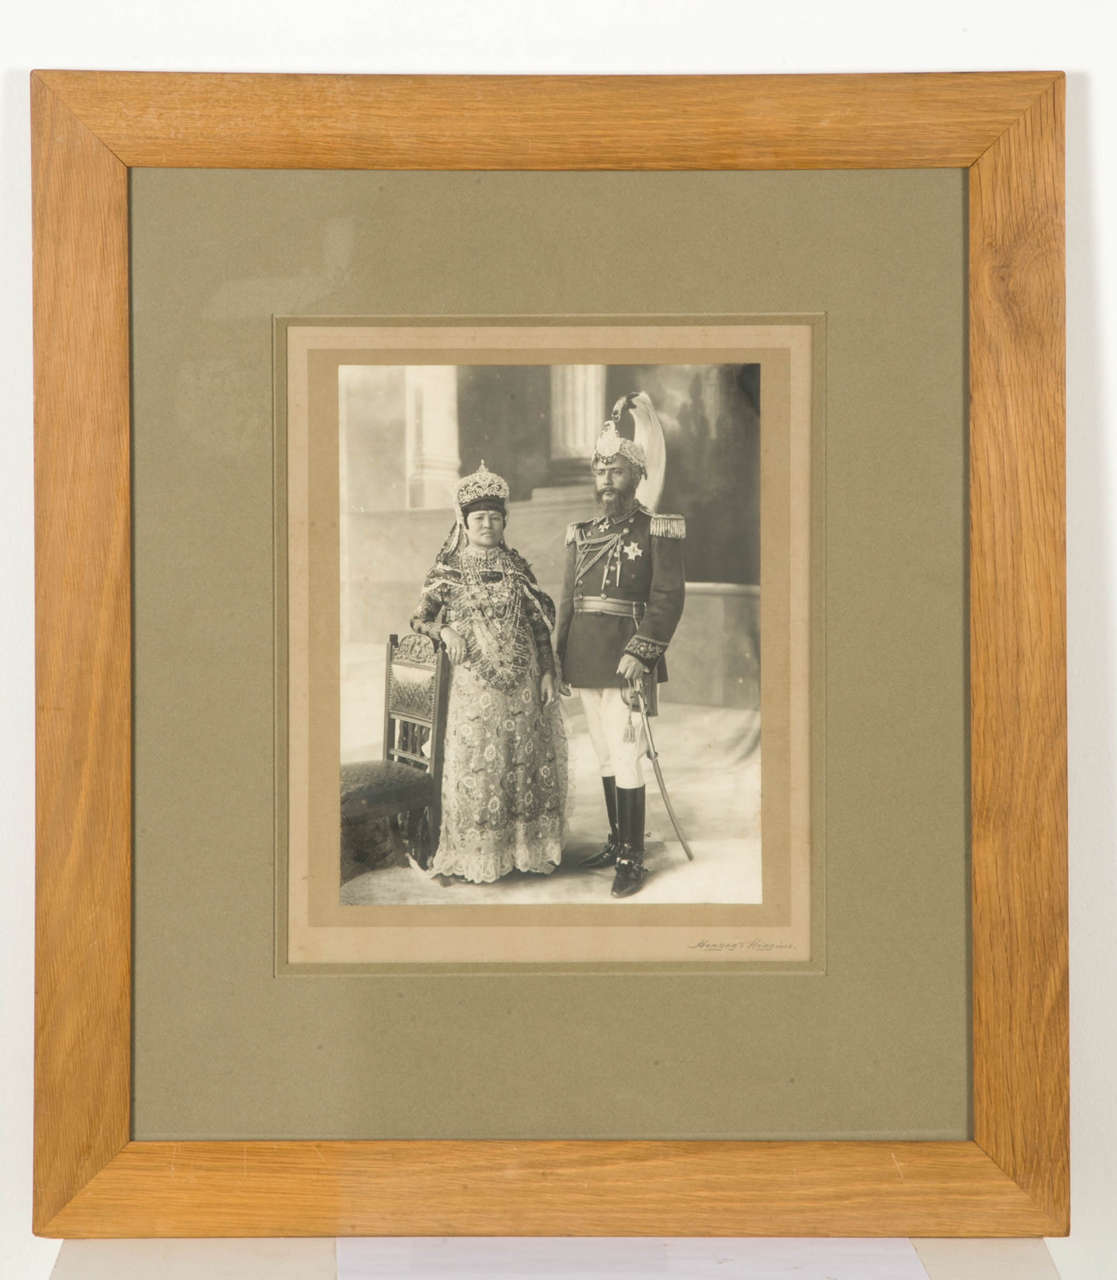 Photography of Maharaja Bhim Shamsher Jang Bahadur Rana (1865-1932) and his wife. Portrait of the couple in the 1910-1920 years. Vintage print, beautiful platinum print. Pencil signature Herzog & Higgins in the lower right of the mounting below